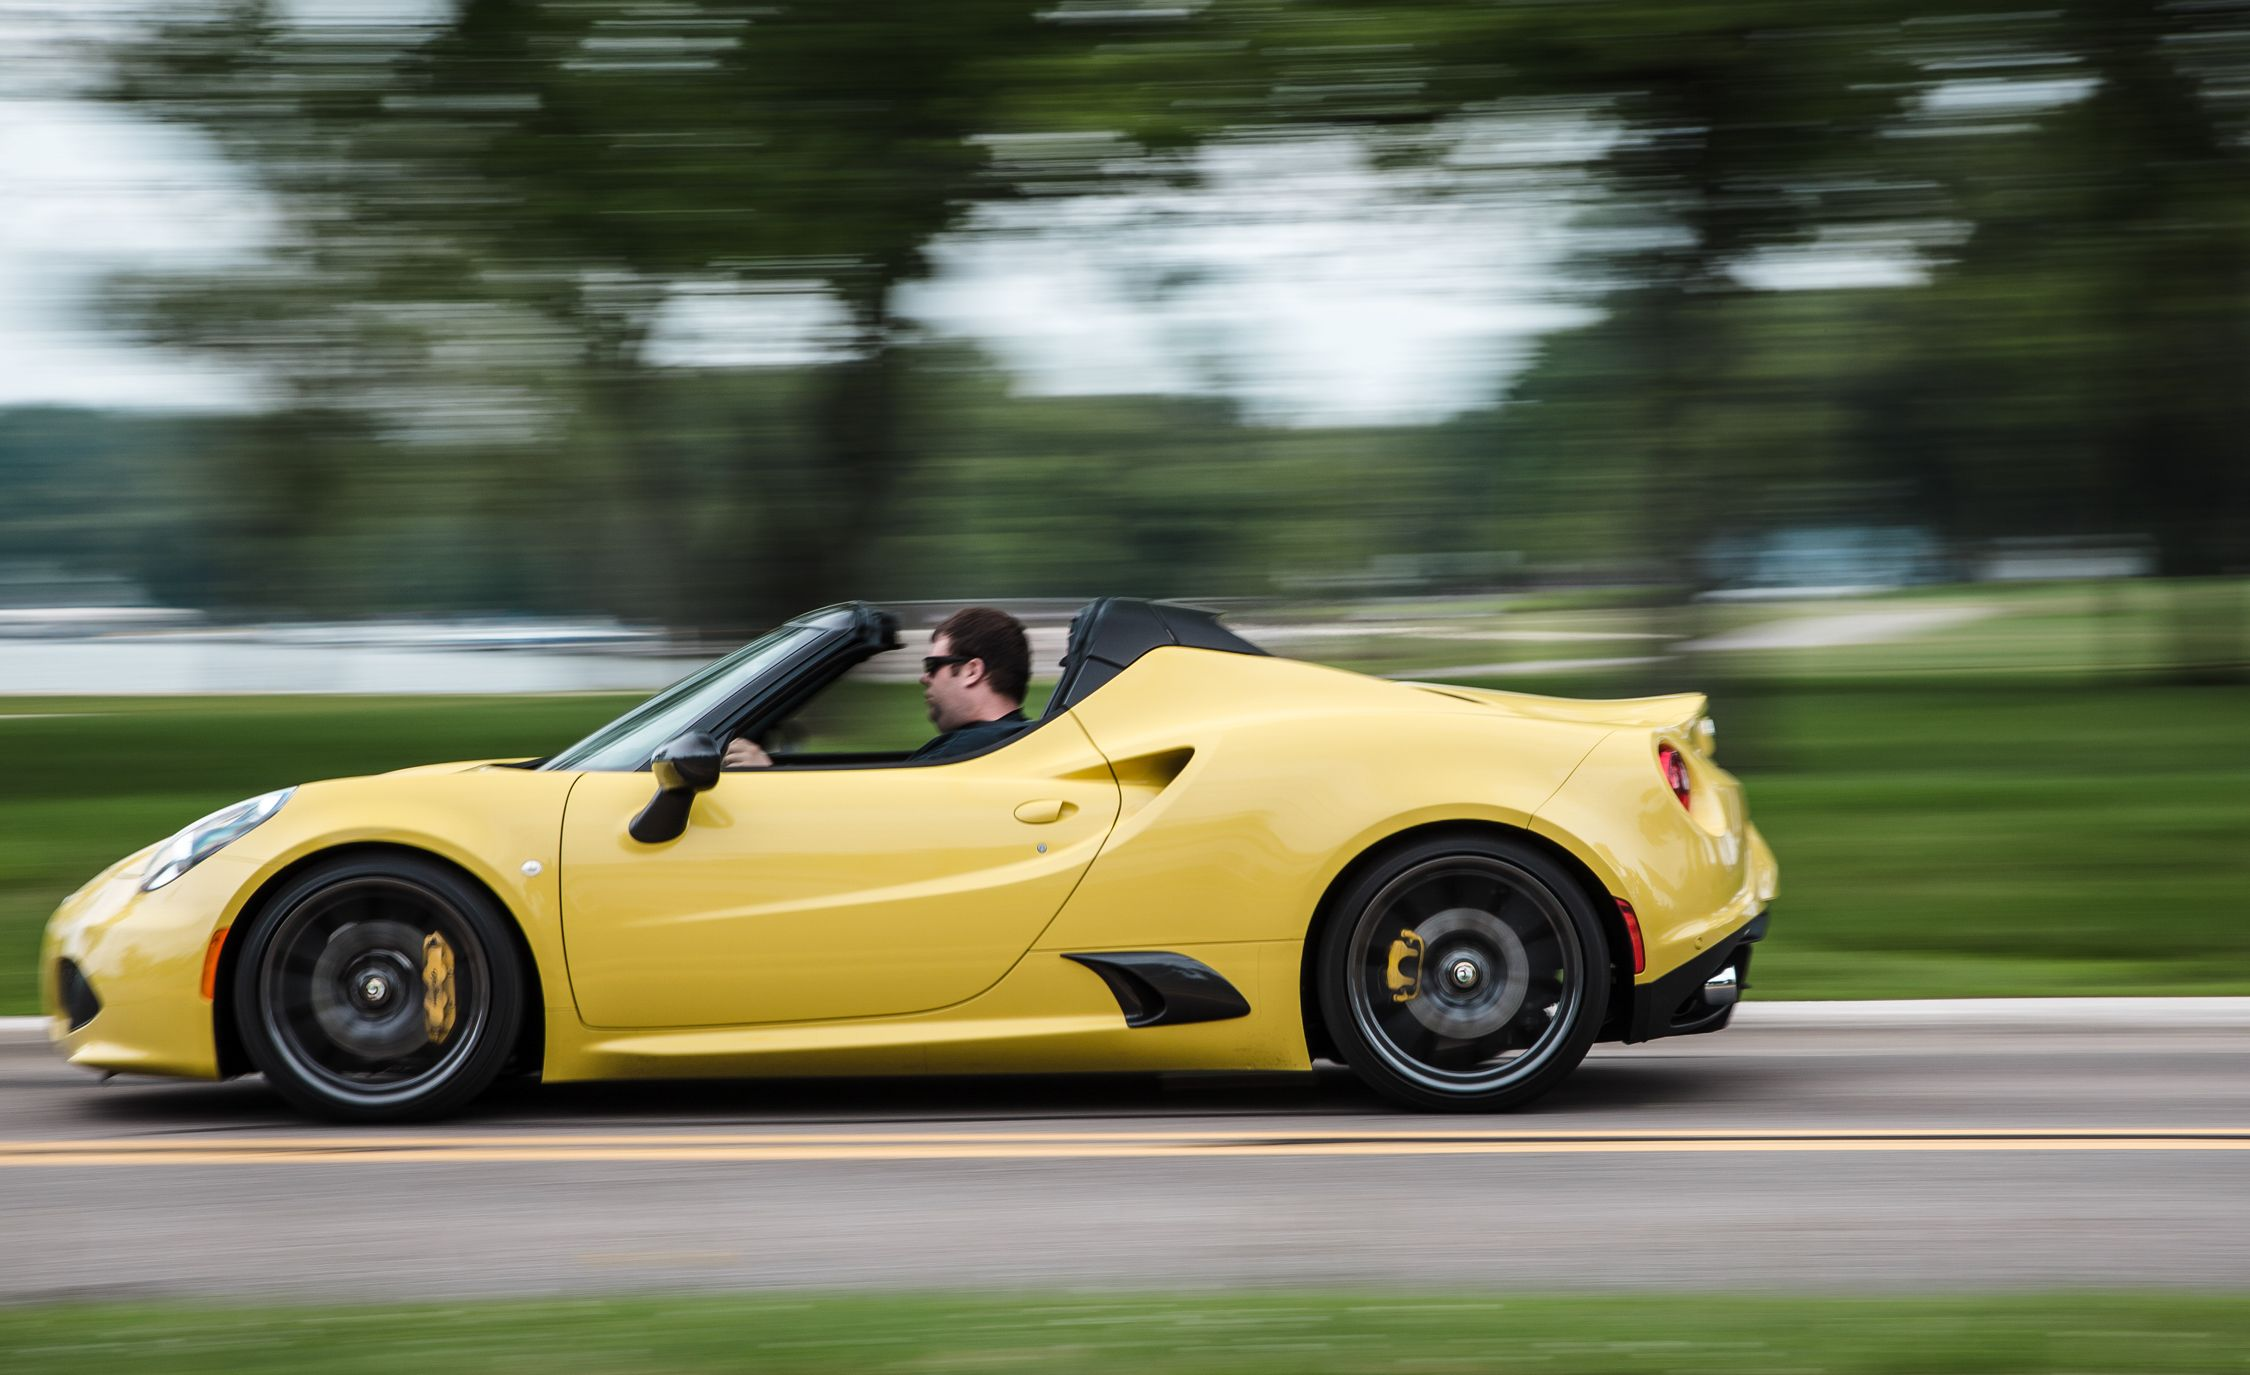 Alfa Romeo 4C Reviews | Alfa Romeo 4C Price, Photos, and Specs | Car